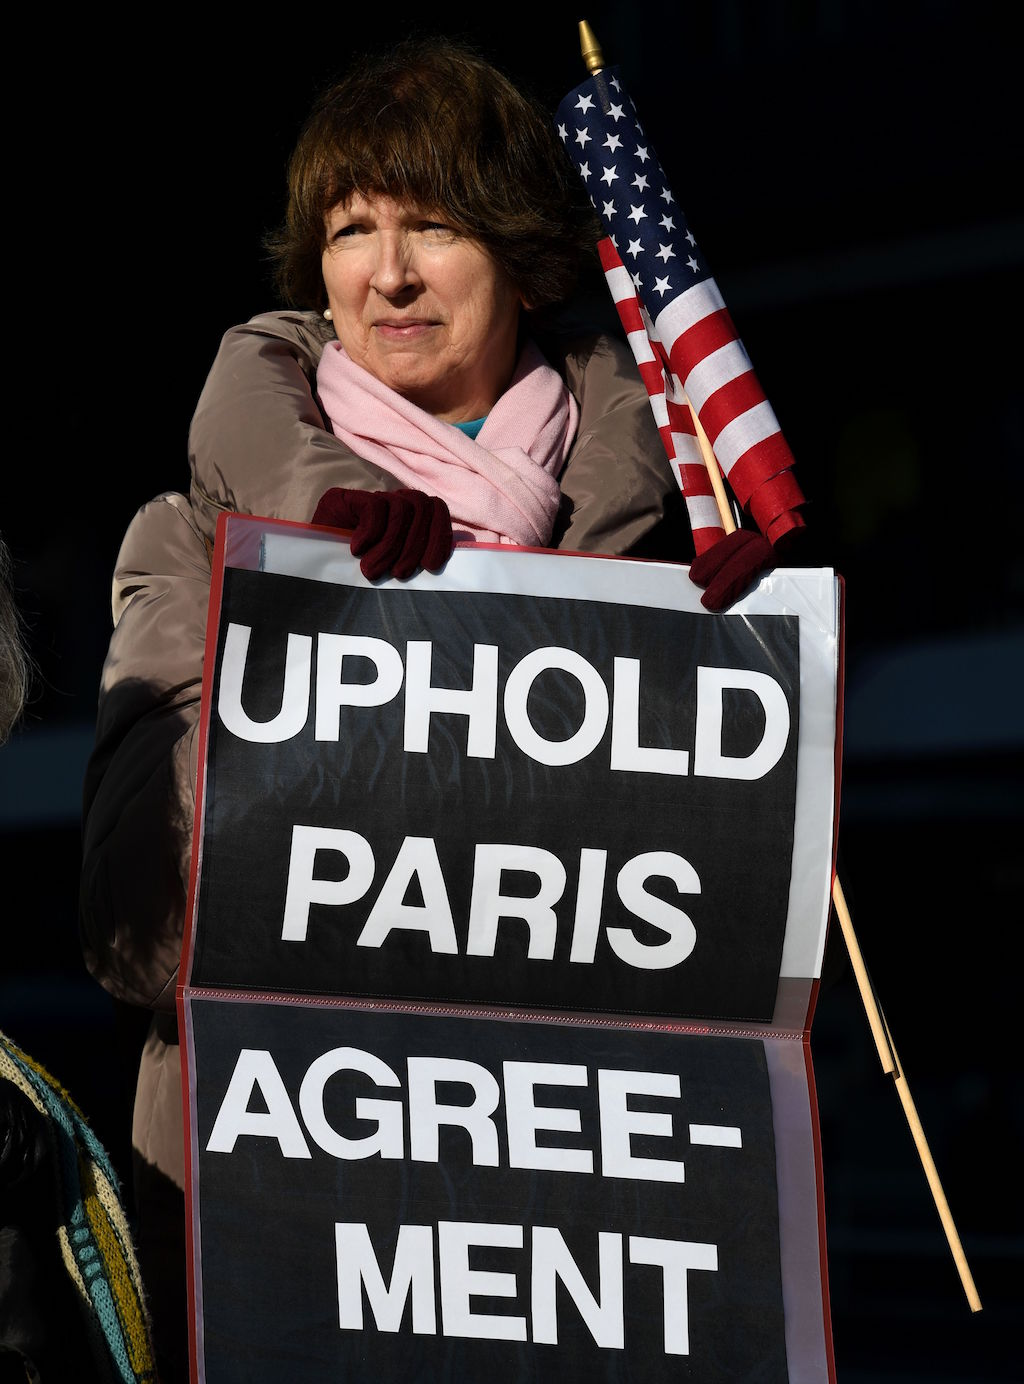 US residents living in Japan and local residents hold a rally near the US embassy in Tokyo on March 16, 2017. About 13 demonstrators demanded visiting US Secretary of State Rex Tillerson to reaffirm the US commitment to the Paris Agreement on climate change. / AFP PHOTO / TOSHIFUMI KITAMURA####################TOSHIFUMI KITAMURA